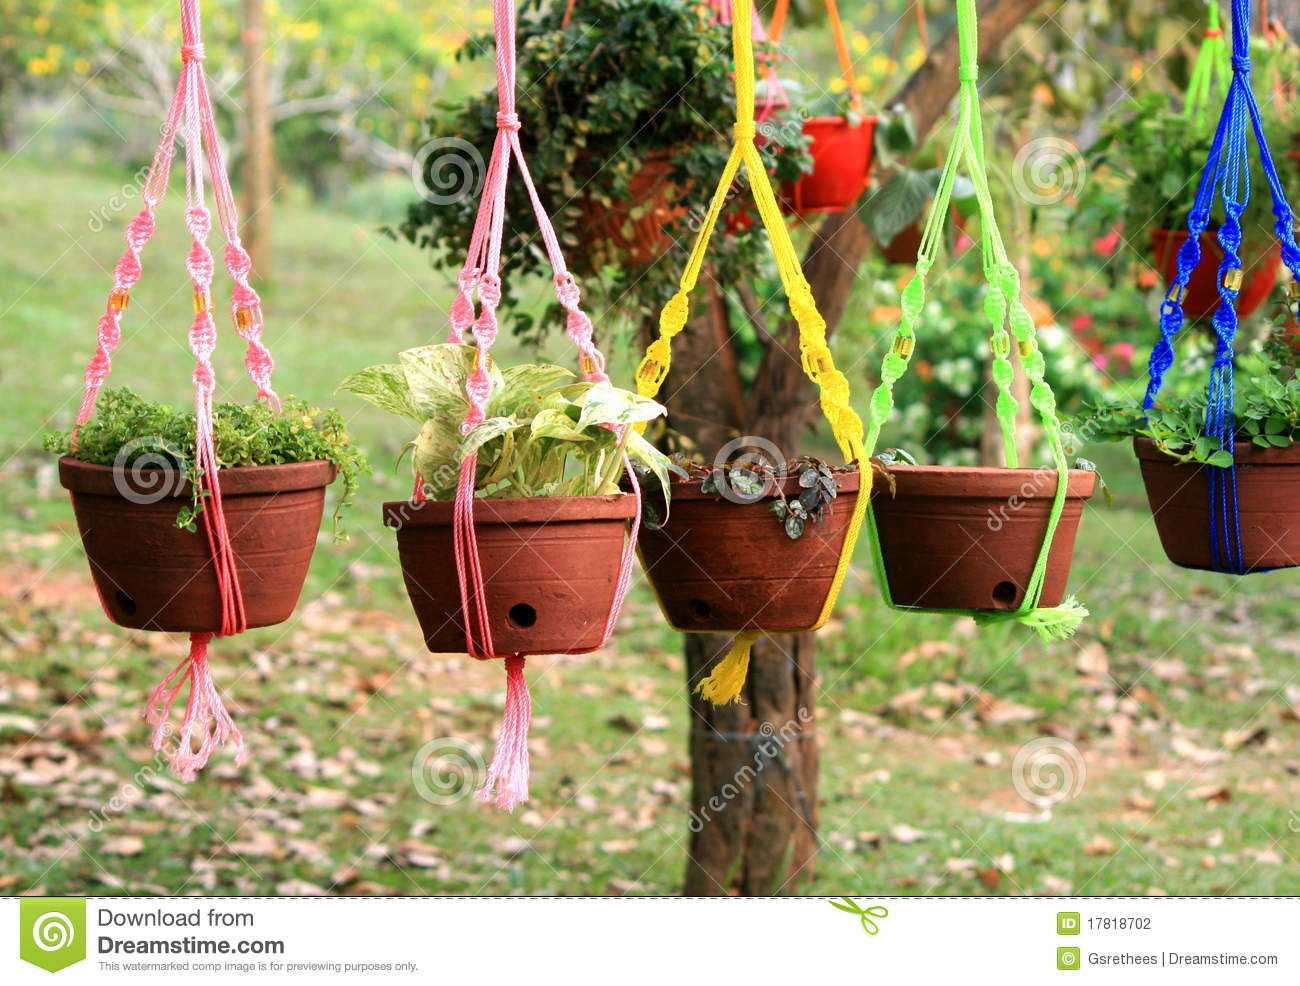 Hanging flower pots stock photo image of planting object for Hanging flower pots ideas